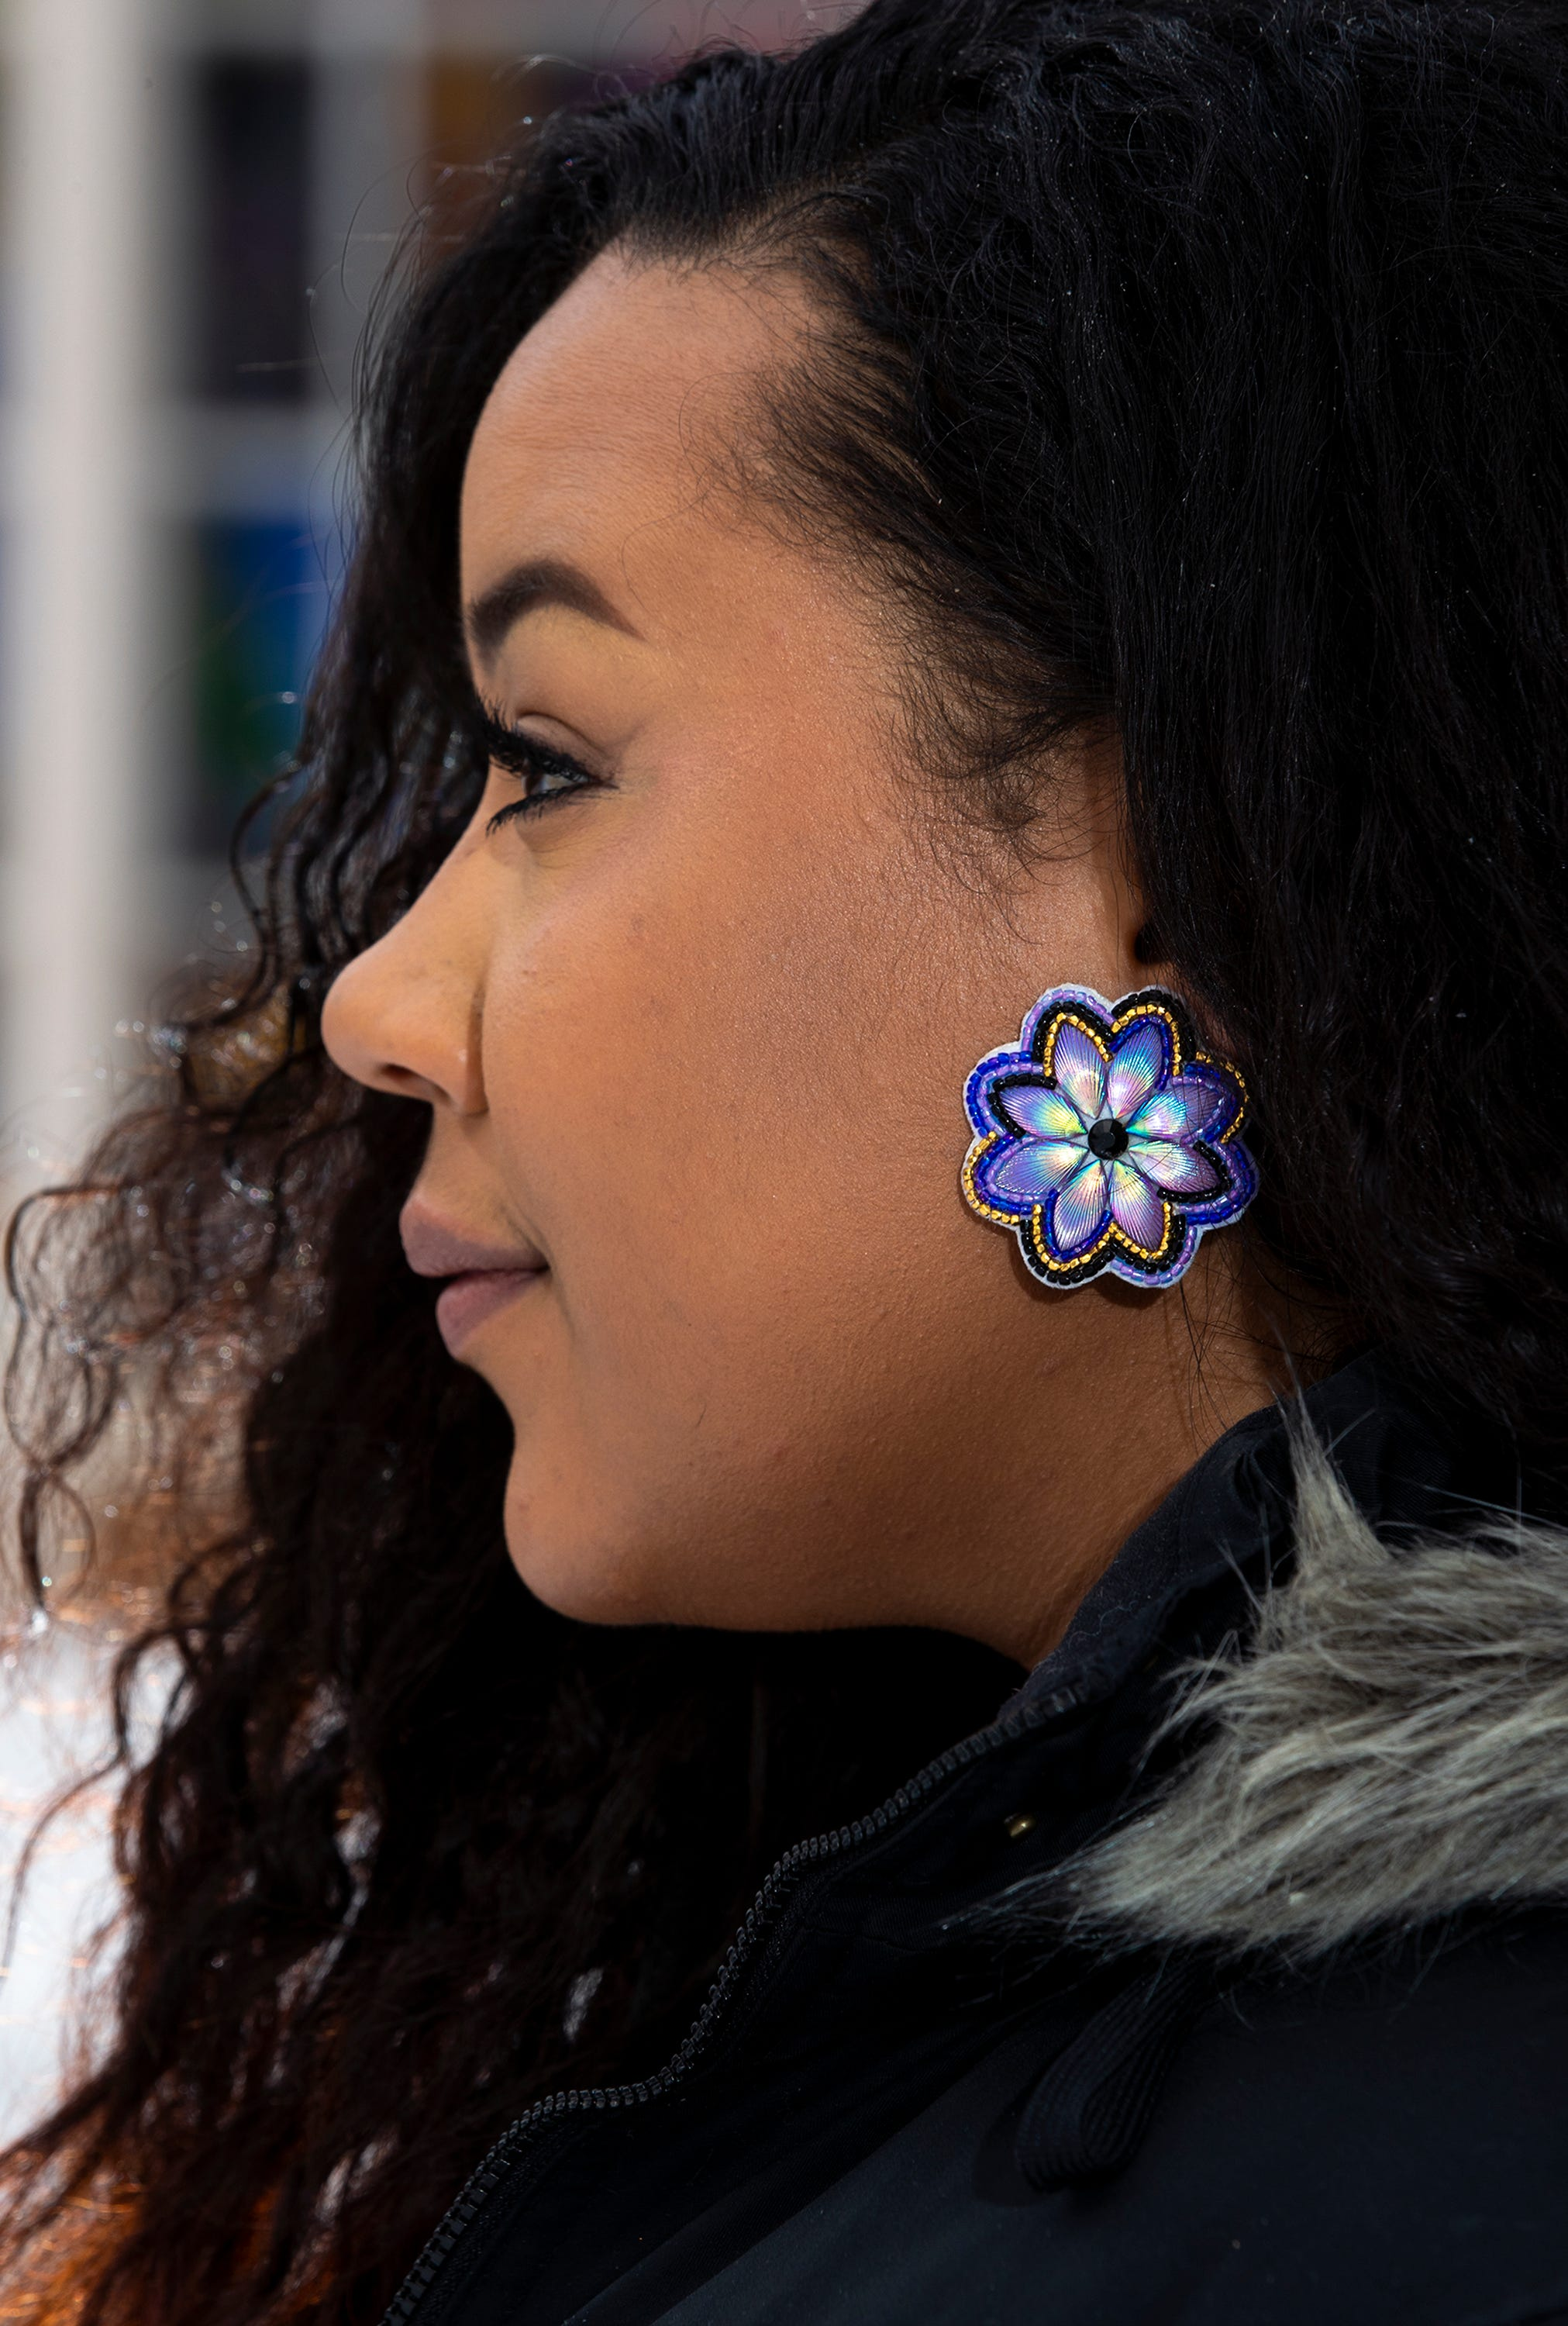 Aaliyah Coppadge, 23, displays her grandmother's Native American earrings as she poses for a portrait Feb. 19 at the intersection of Mcindoe Street and North Fourth Street in Wausau.